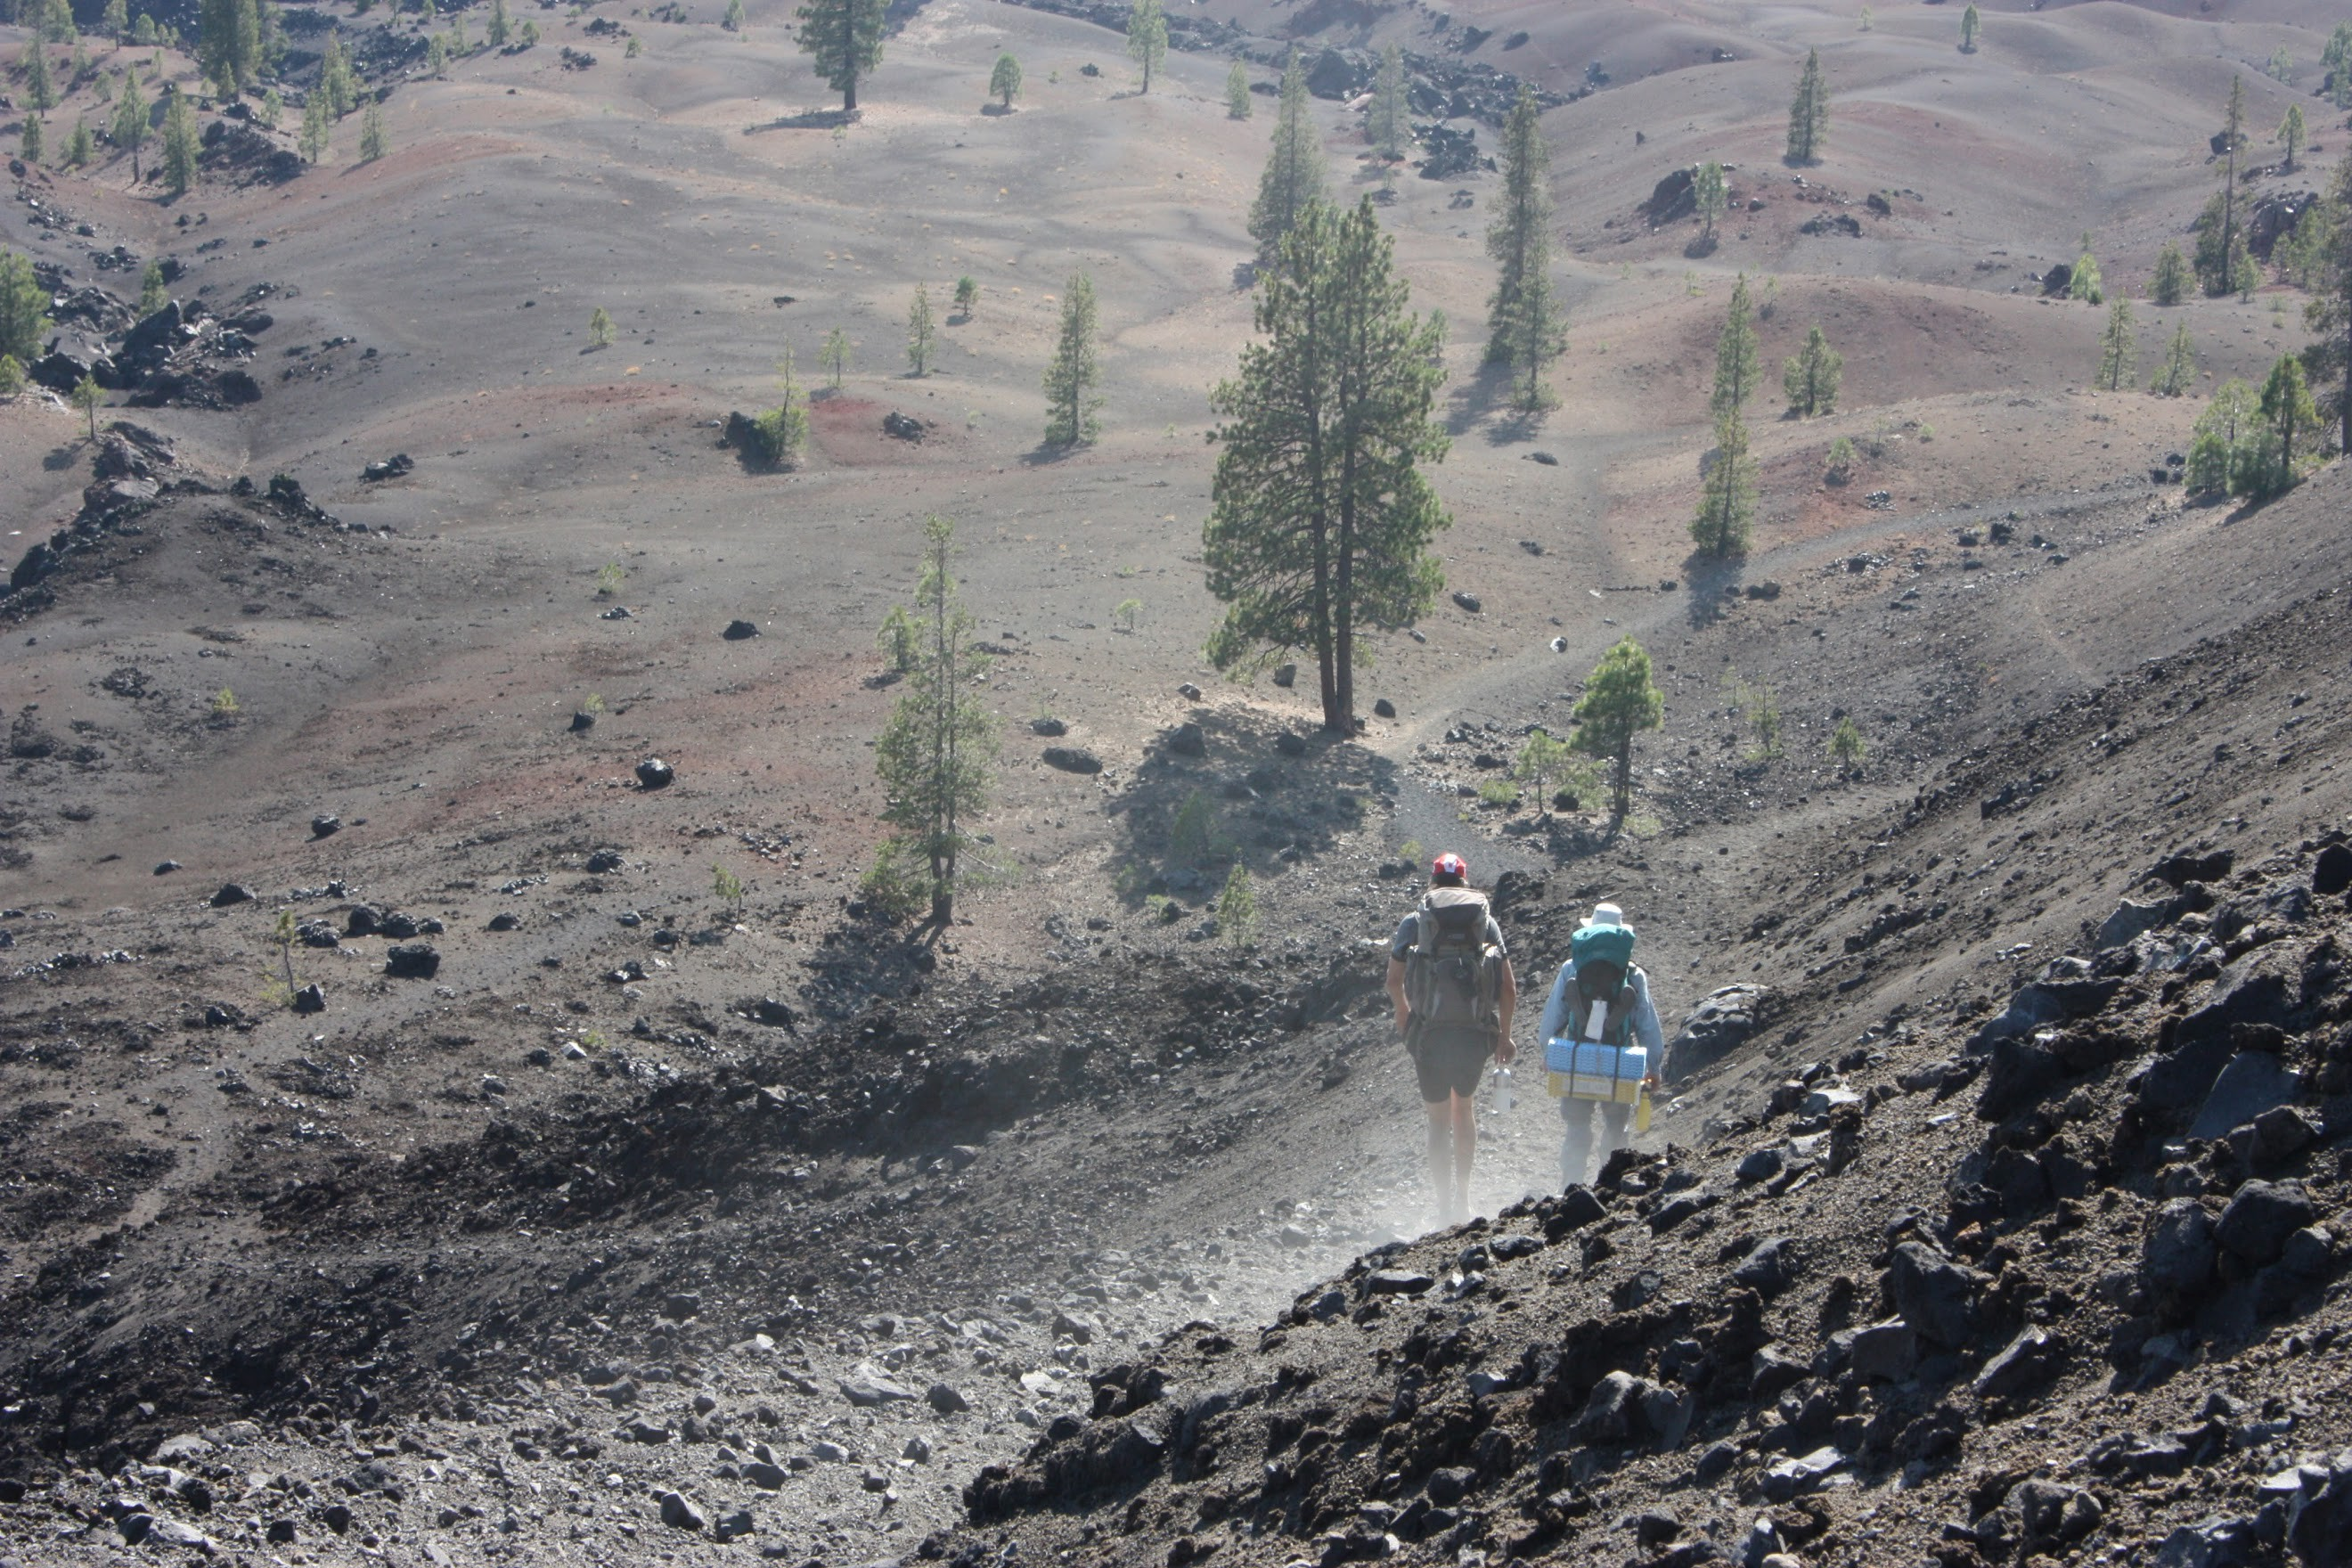 Hikers descending down a dusty volcanic trail